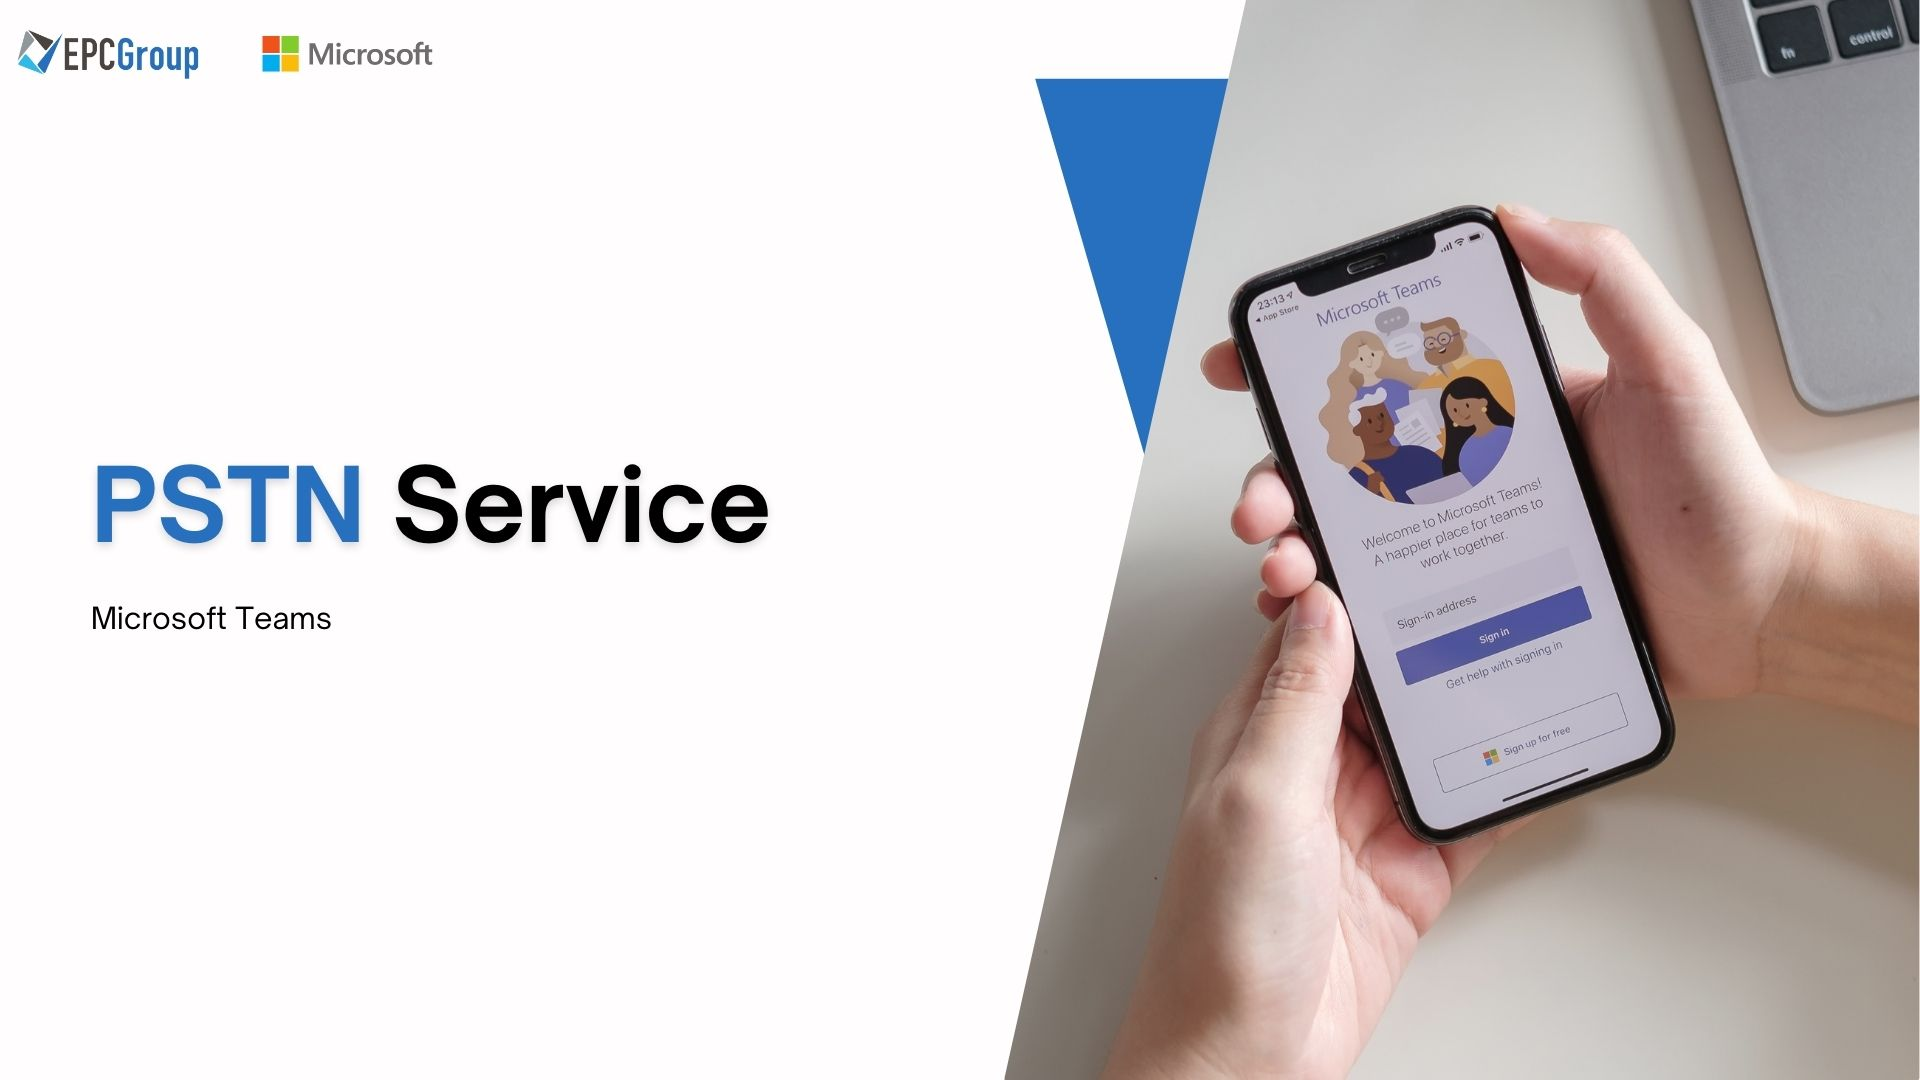 PSTN Service From Microsoft Teams Enabled Phones - thumb image